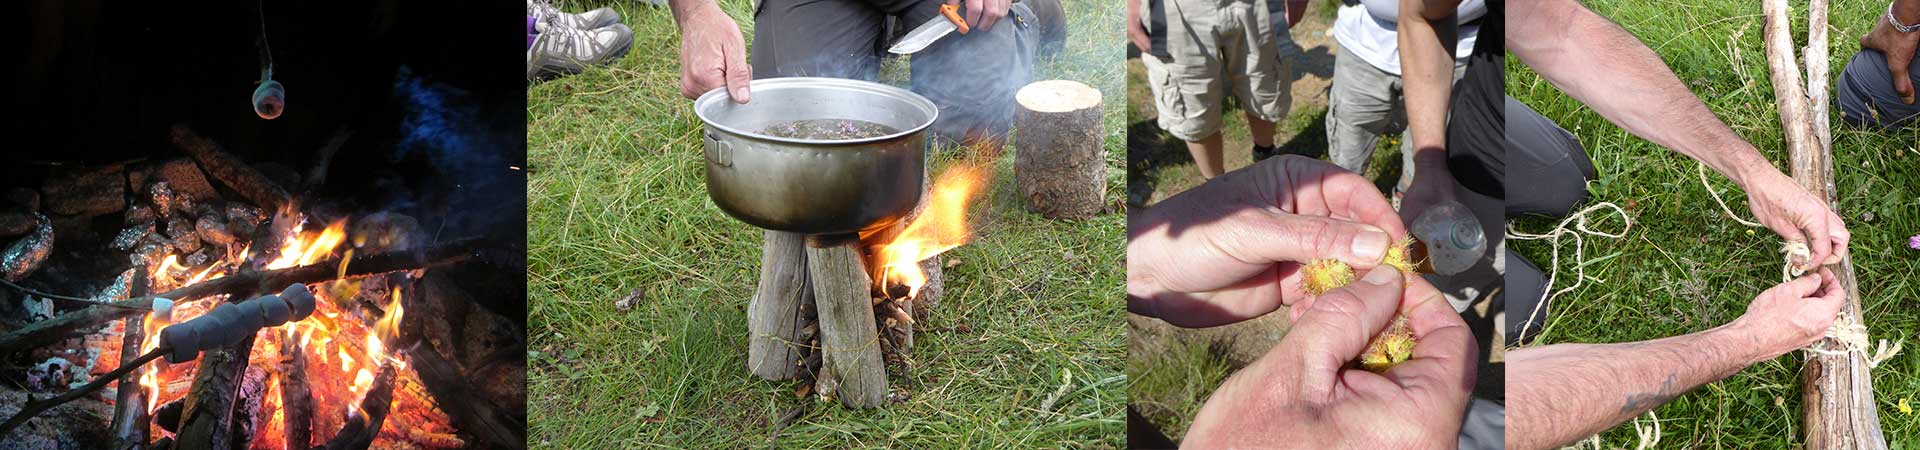 Stage de Survie / Bushcraft